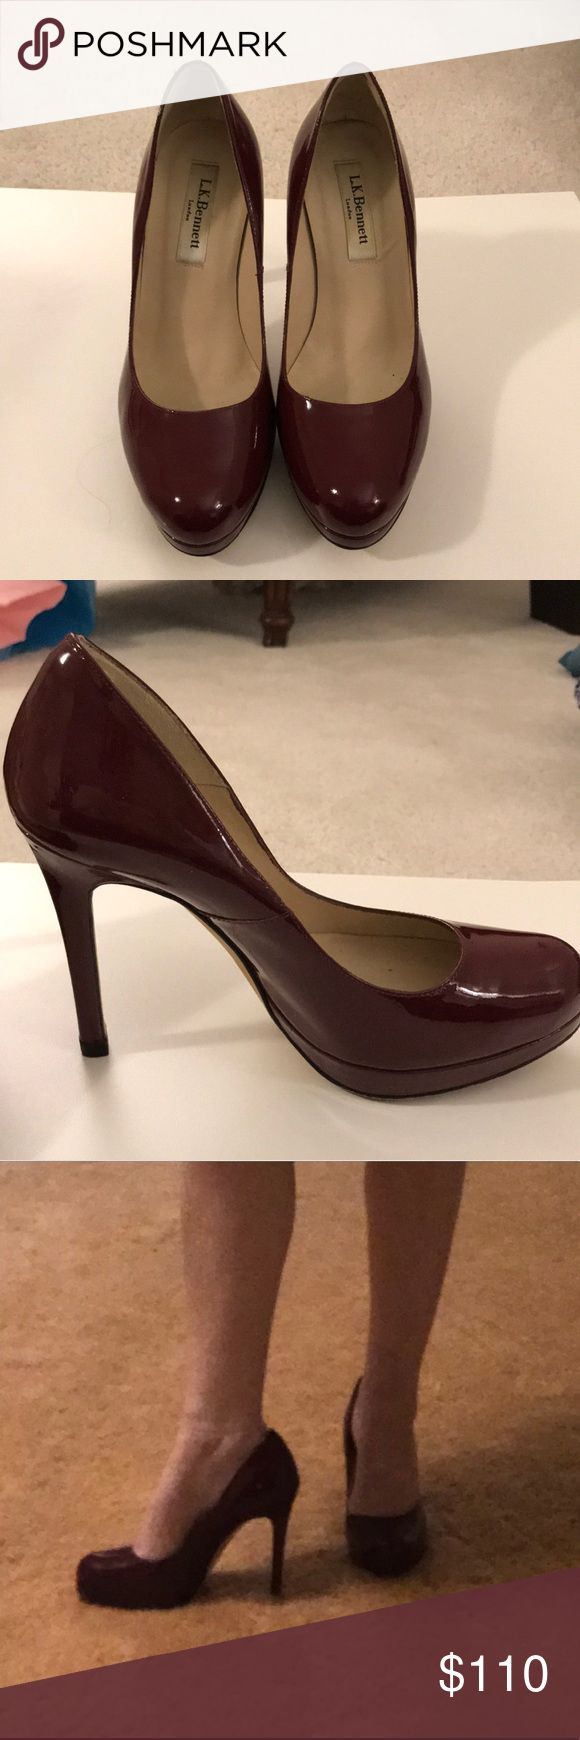 Lk Bennett maroon pumps Like new, these maroon pumps add color and style ( they are the go to style for Kate Middleton) to any outfit.  Wear them and make your outfit pop while also being comfortable. There is normal wear on soles and one little nick on the inside of the left heel ( picture shown -not noticeable when wearing only if you are looking upclose)...make your outfit pop with these pumps! LK Bennett Shoes Heels